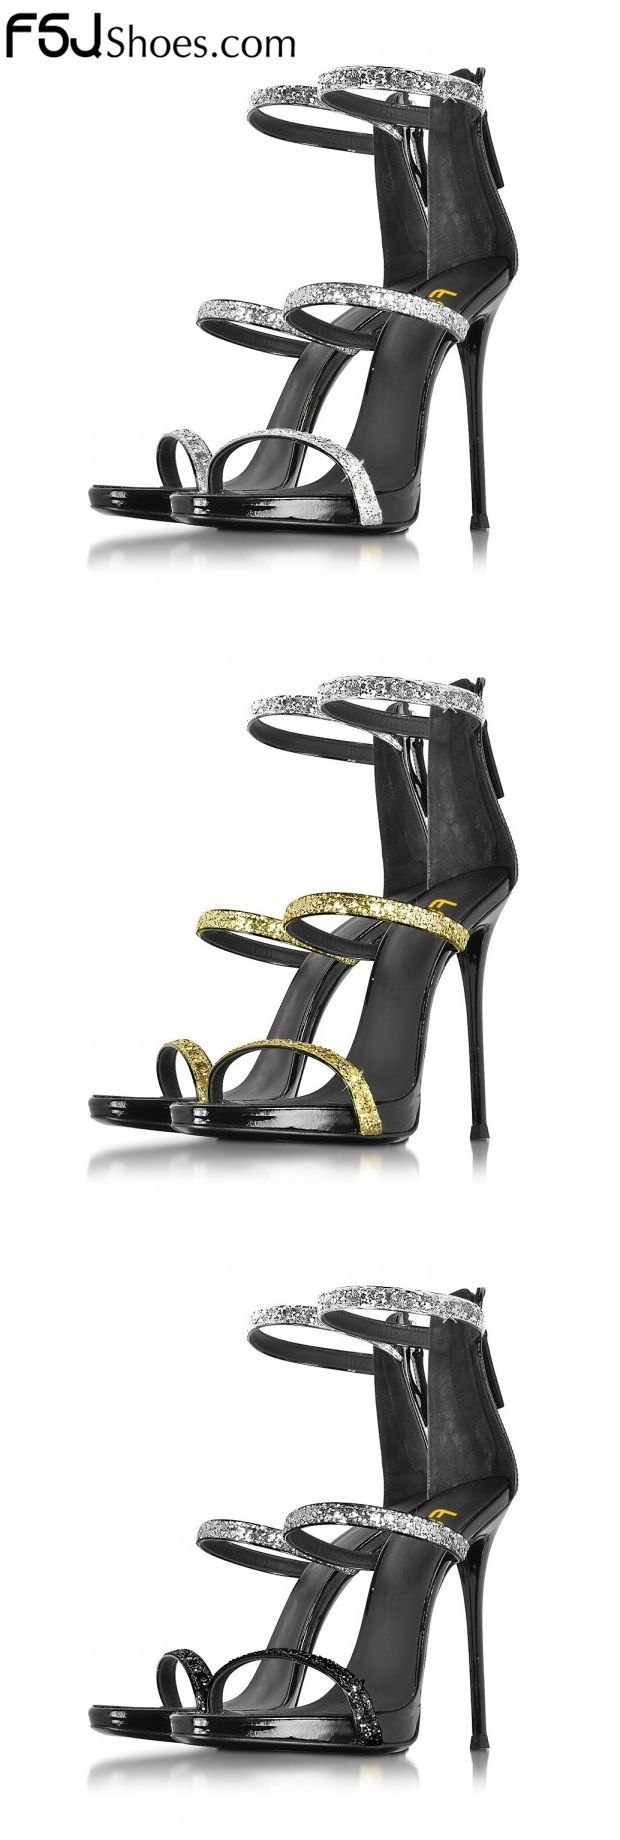 Women's Style Sandal Shoes Winter Fashion Prom Dresses Shoes Women's Silver and Gold Glitter Open Toe Stiletto Heels Ankle Strap Sandals New Year Party Outfit 2018 Spring Outfit 2018| FSJ